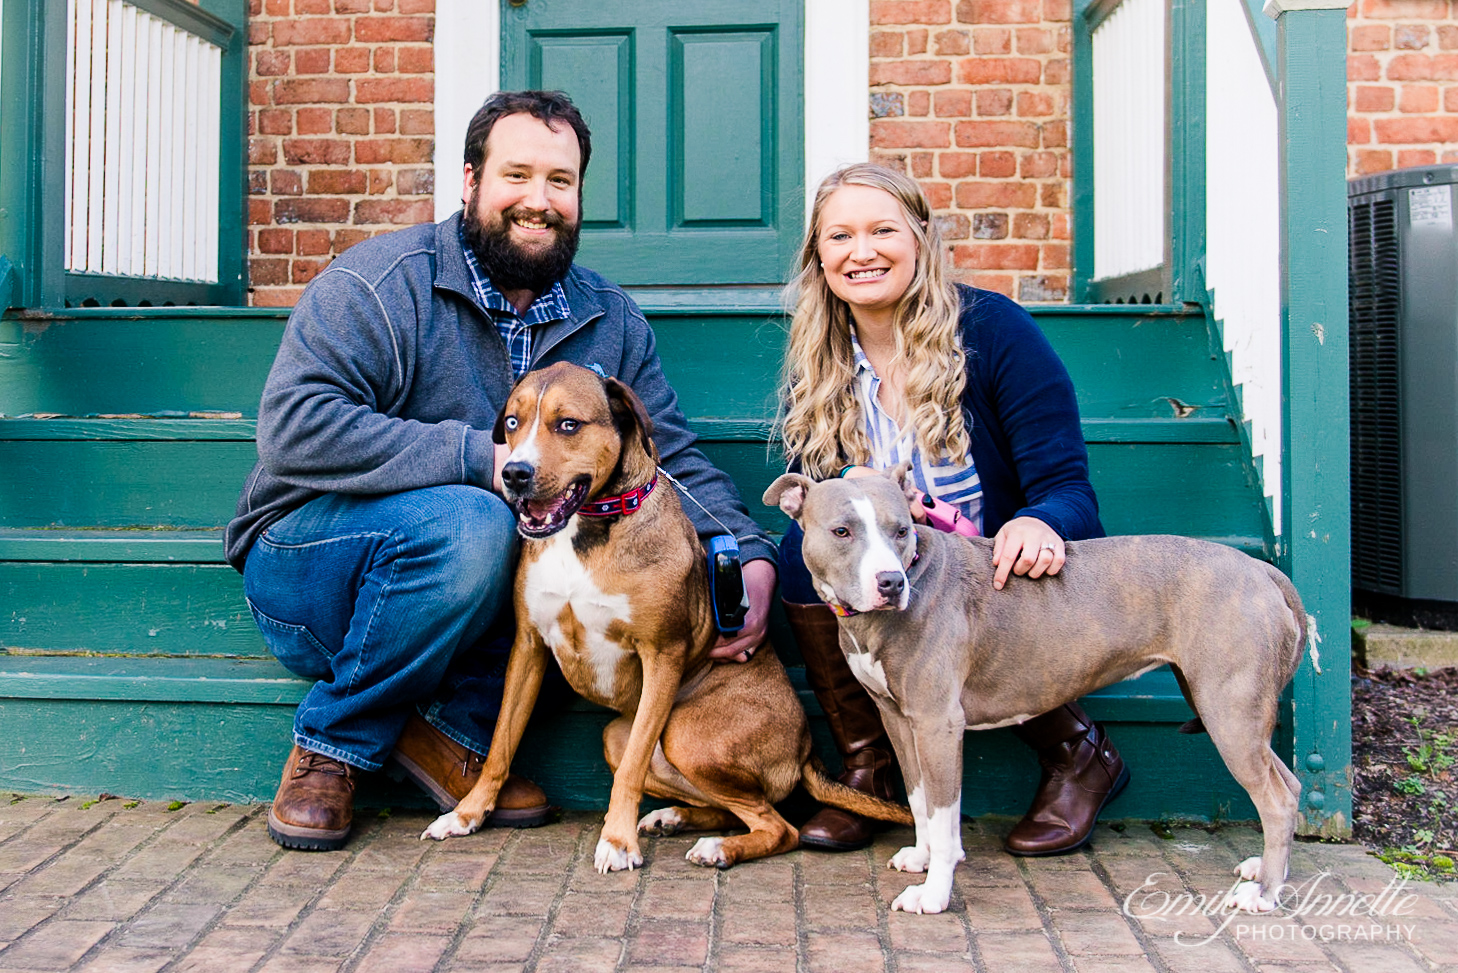 A couple posing together with their two dogs in front of the historic house at Green Spring Gardens Park in Fairfax, Virginia